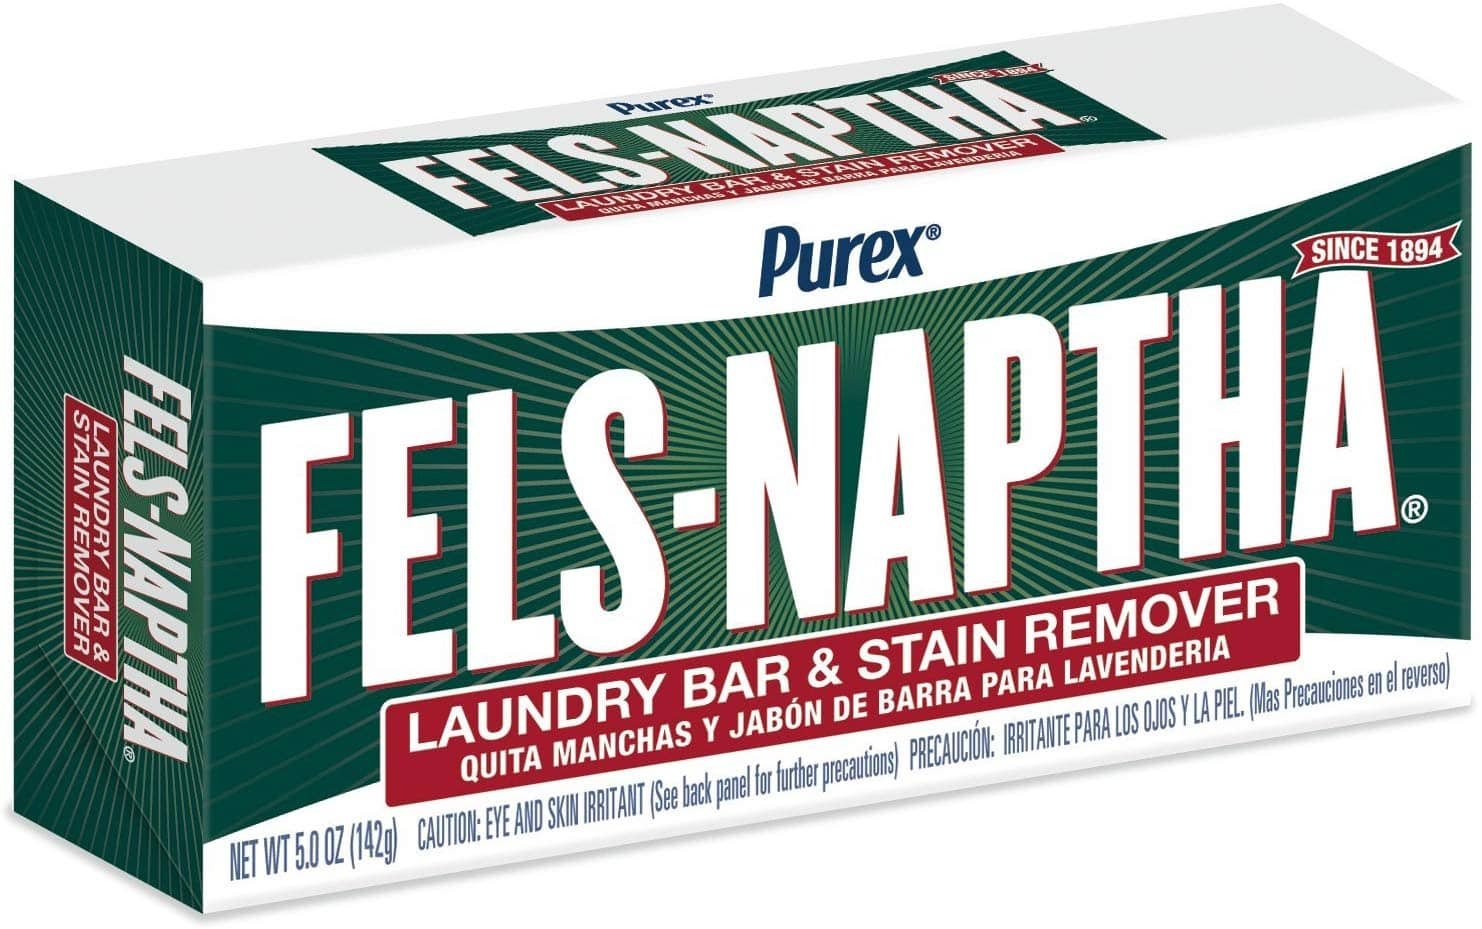 2 Bars - 5 oz Fels-Naptha Laundry Bar and Stain Remover $2.25 5% or $1.59 15%